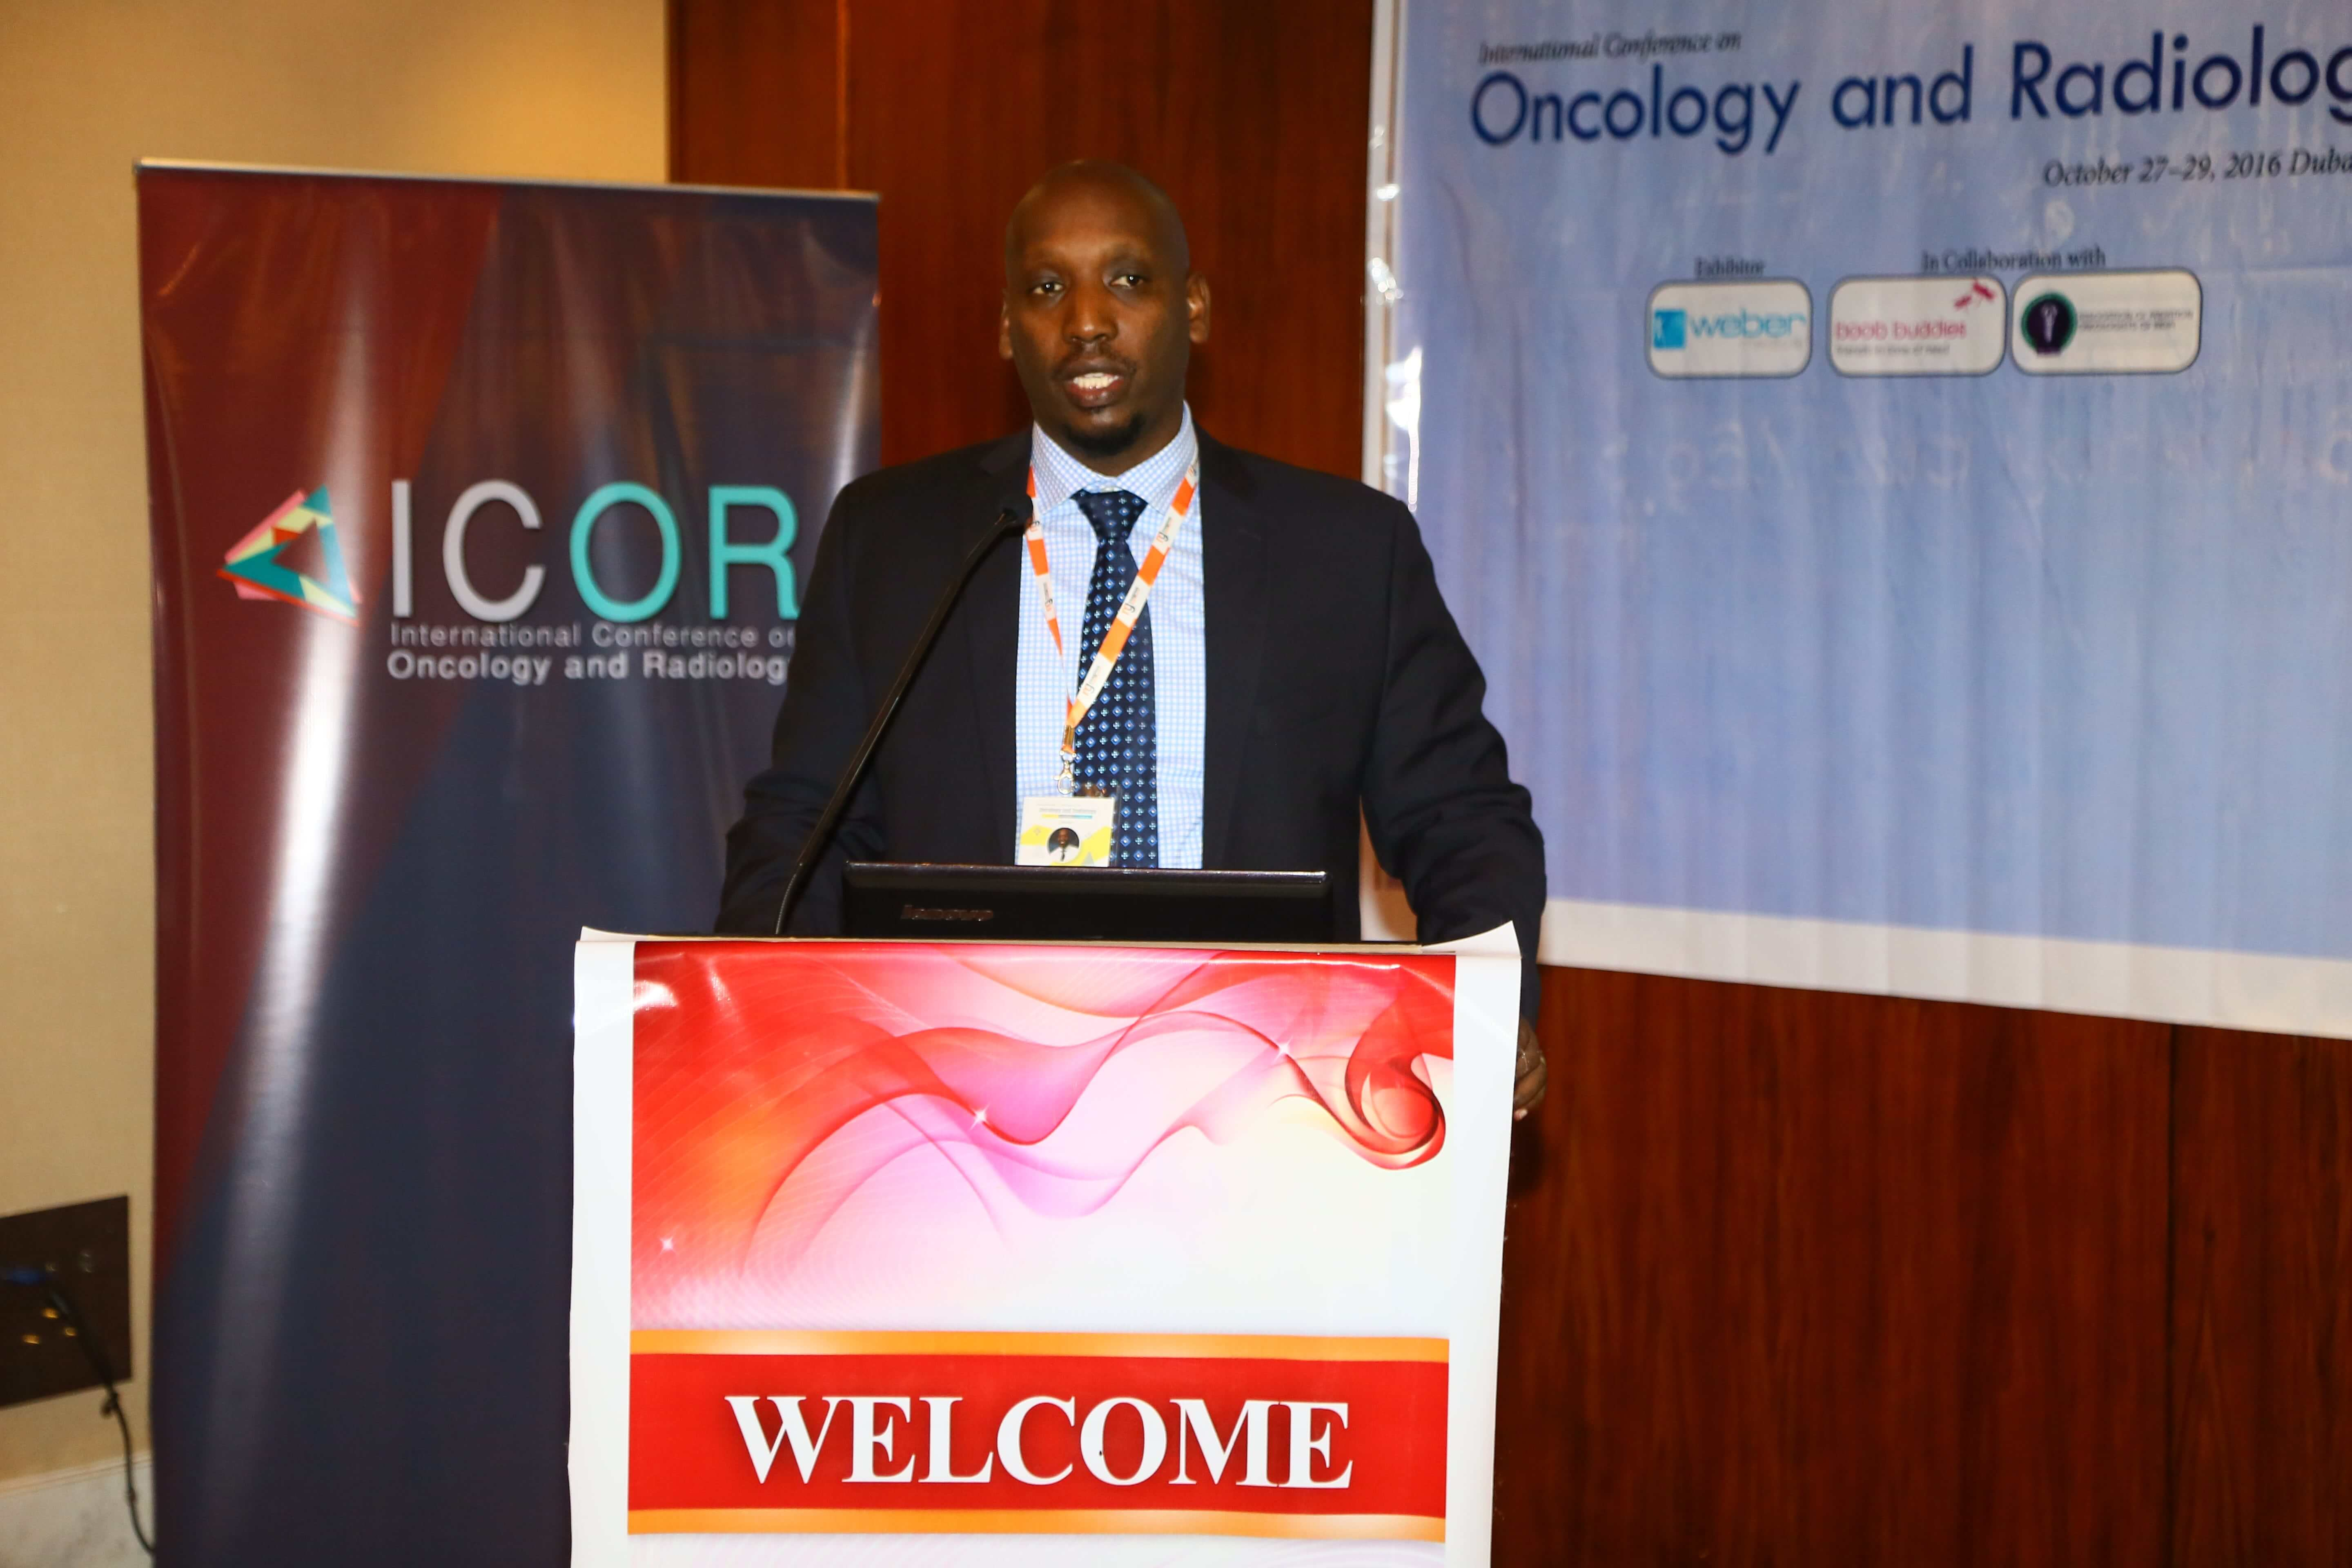 Cancer research conferences - Dr. Christian Ntizimira